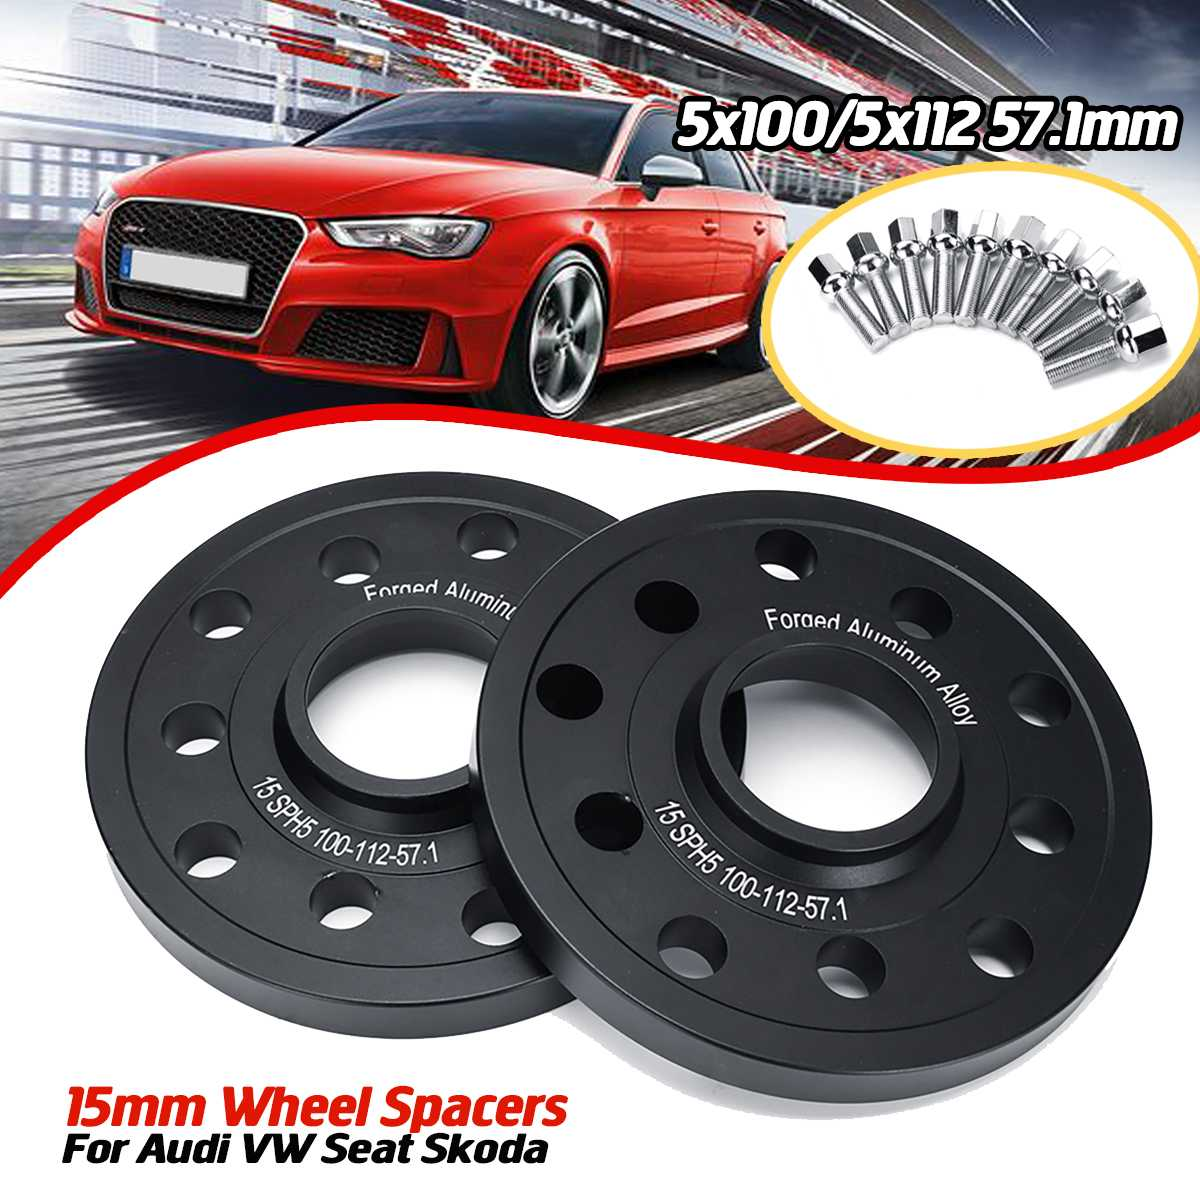 2 X 8mm ALLOY WHEEL SPACERS SHIMS M14x1.5 SILVER BOLTS FOR AUDI 5X112